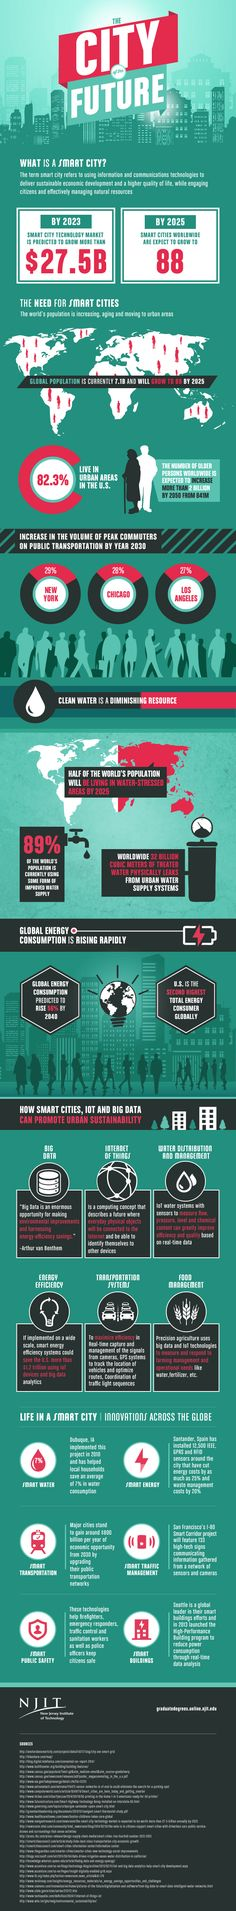 INFOGRAPHIC: How smart cities are creating a greener future